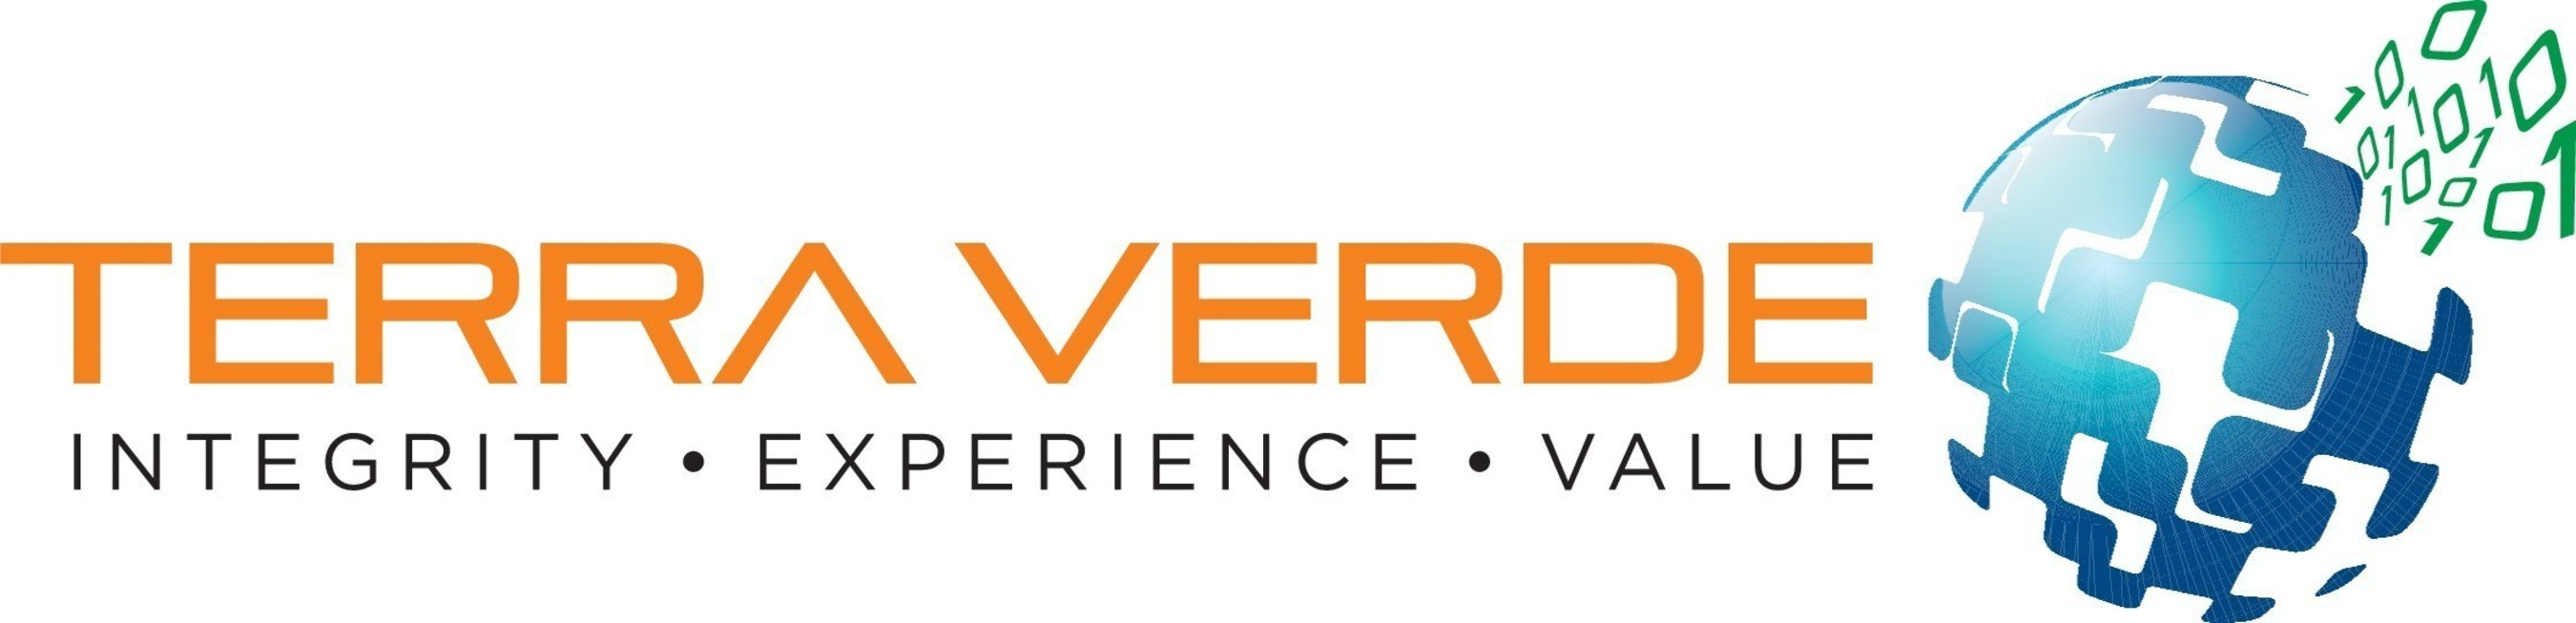 Terra Verde - Your company's customized risk management services and solutions provider.